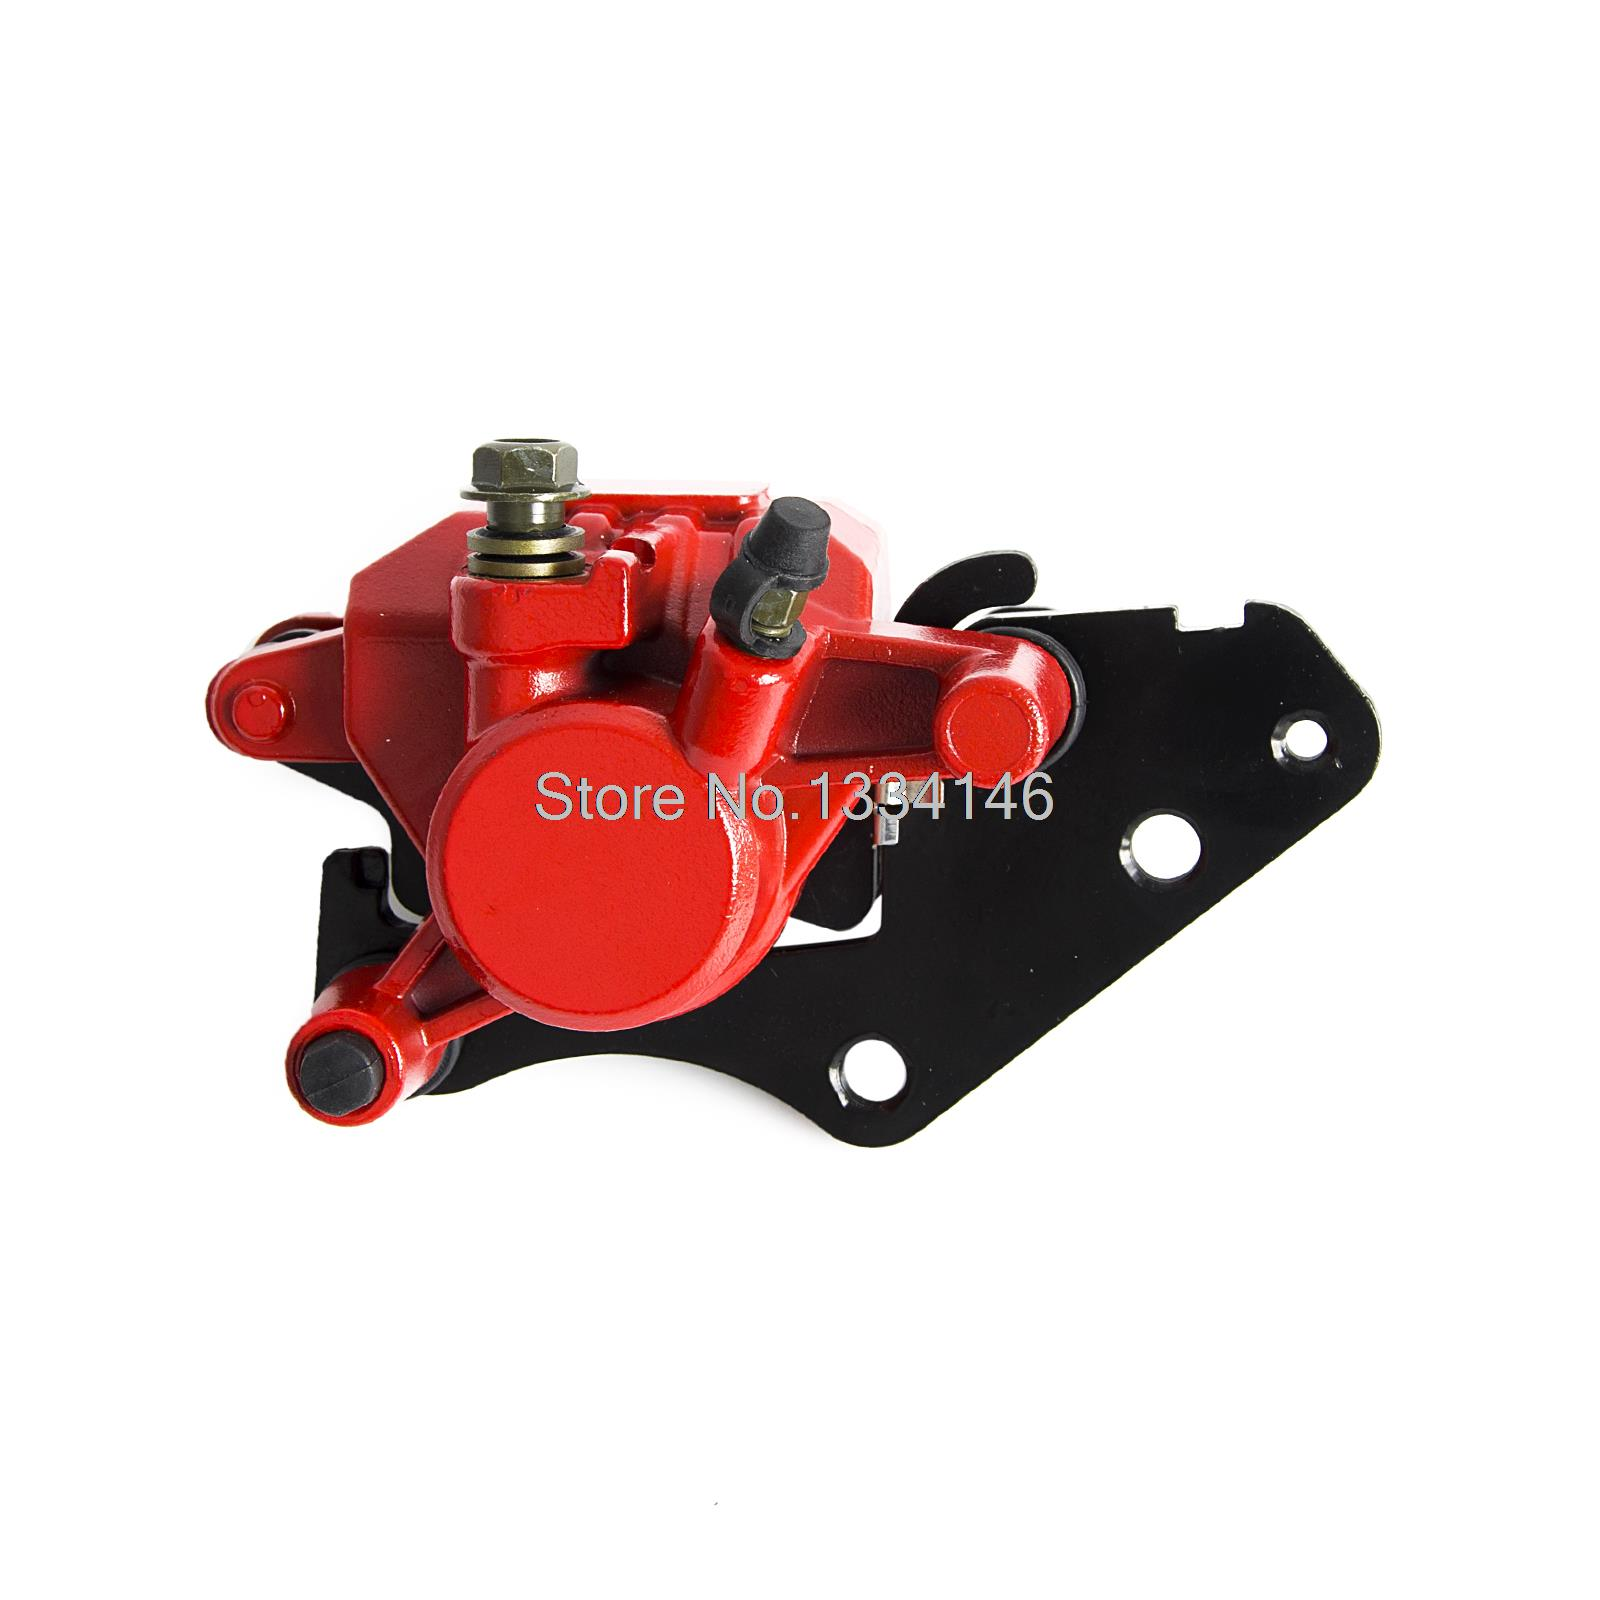 Front Brake Caliper Assy With Pads For Yamaha XC125E Axis Treet 09-13 E53J brake caliper assy with pads for yamaha xc125e axis treet e53j 2009 2013 210 2011 2012 number 32p f580u 11 00